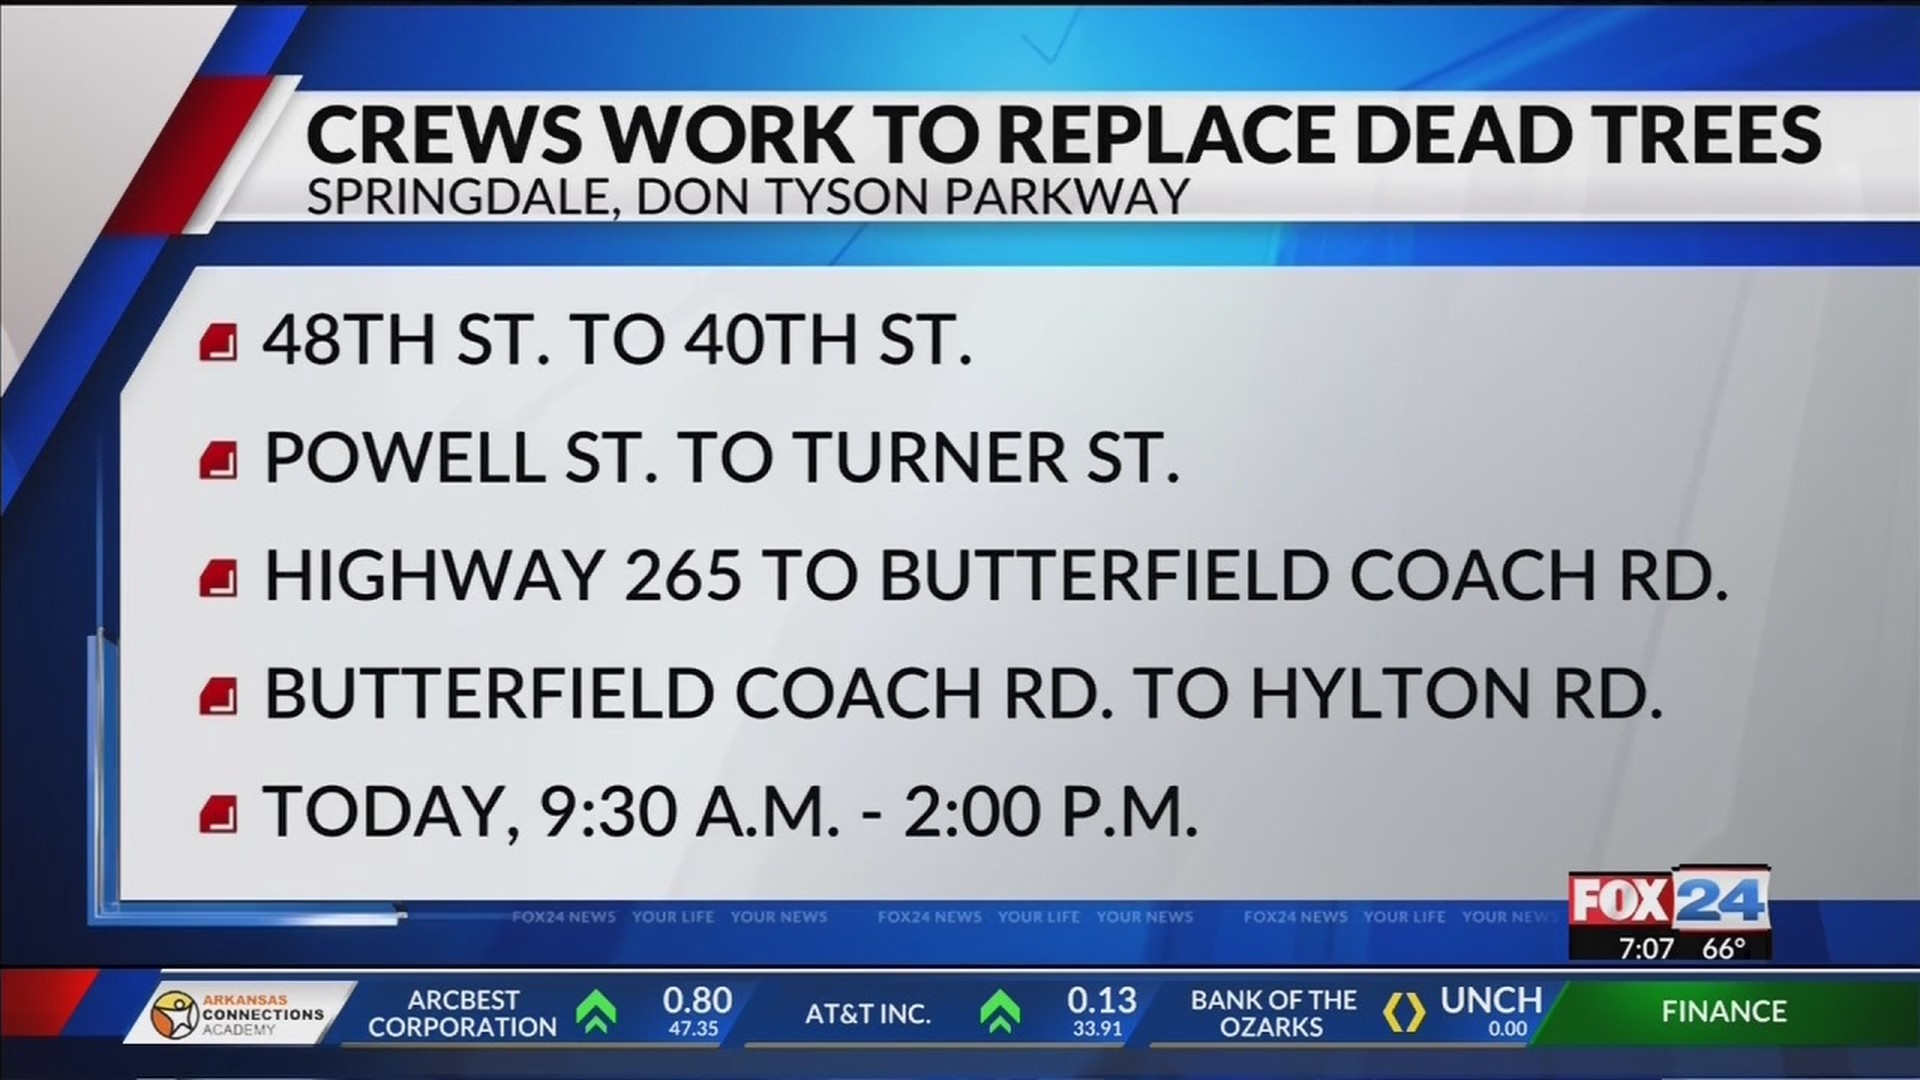 Lanes_on_Don_Tyson_Parkway_to_Close_0_20180925123122